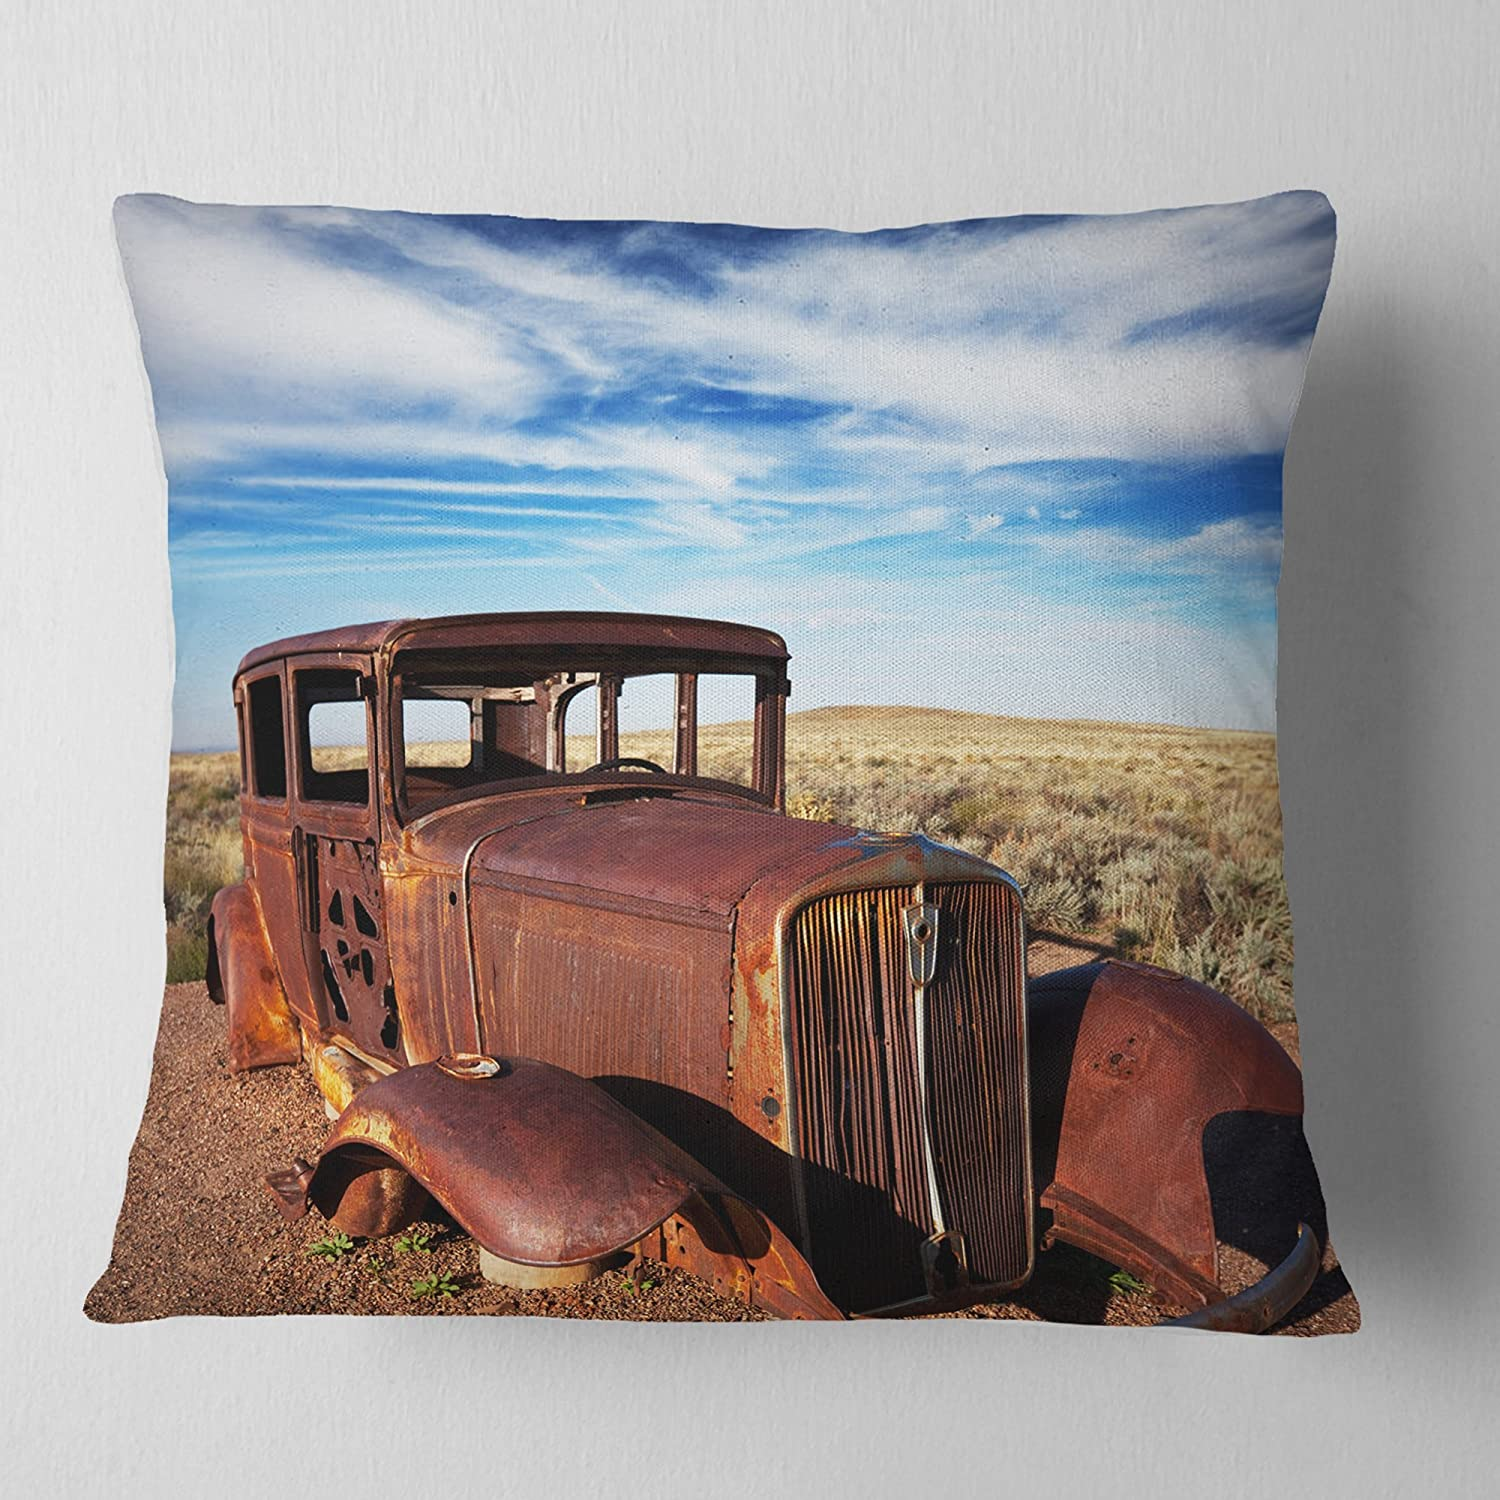 Designart Vintage Car Under Special price Bright Cush Max 69% OFF Sky' Abstract Blue Throw